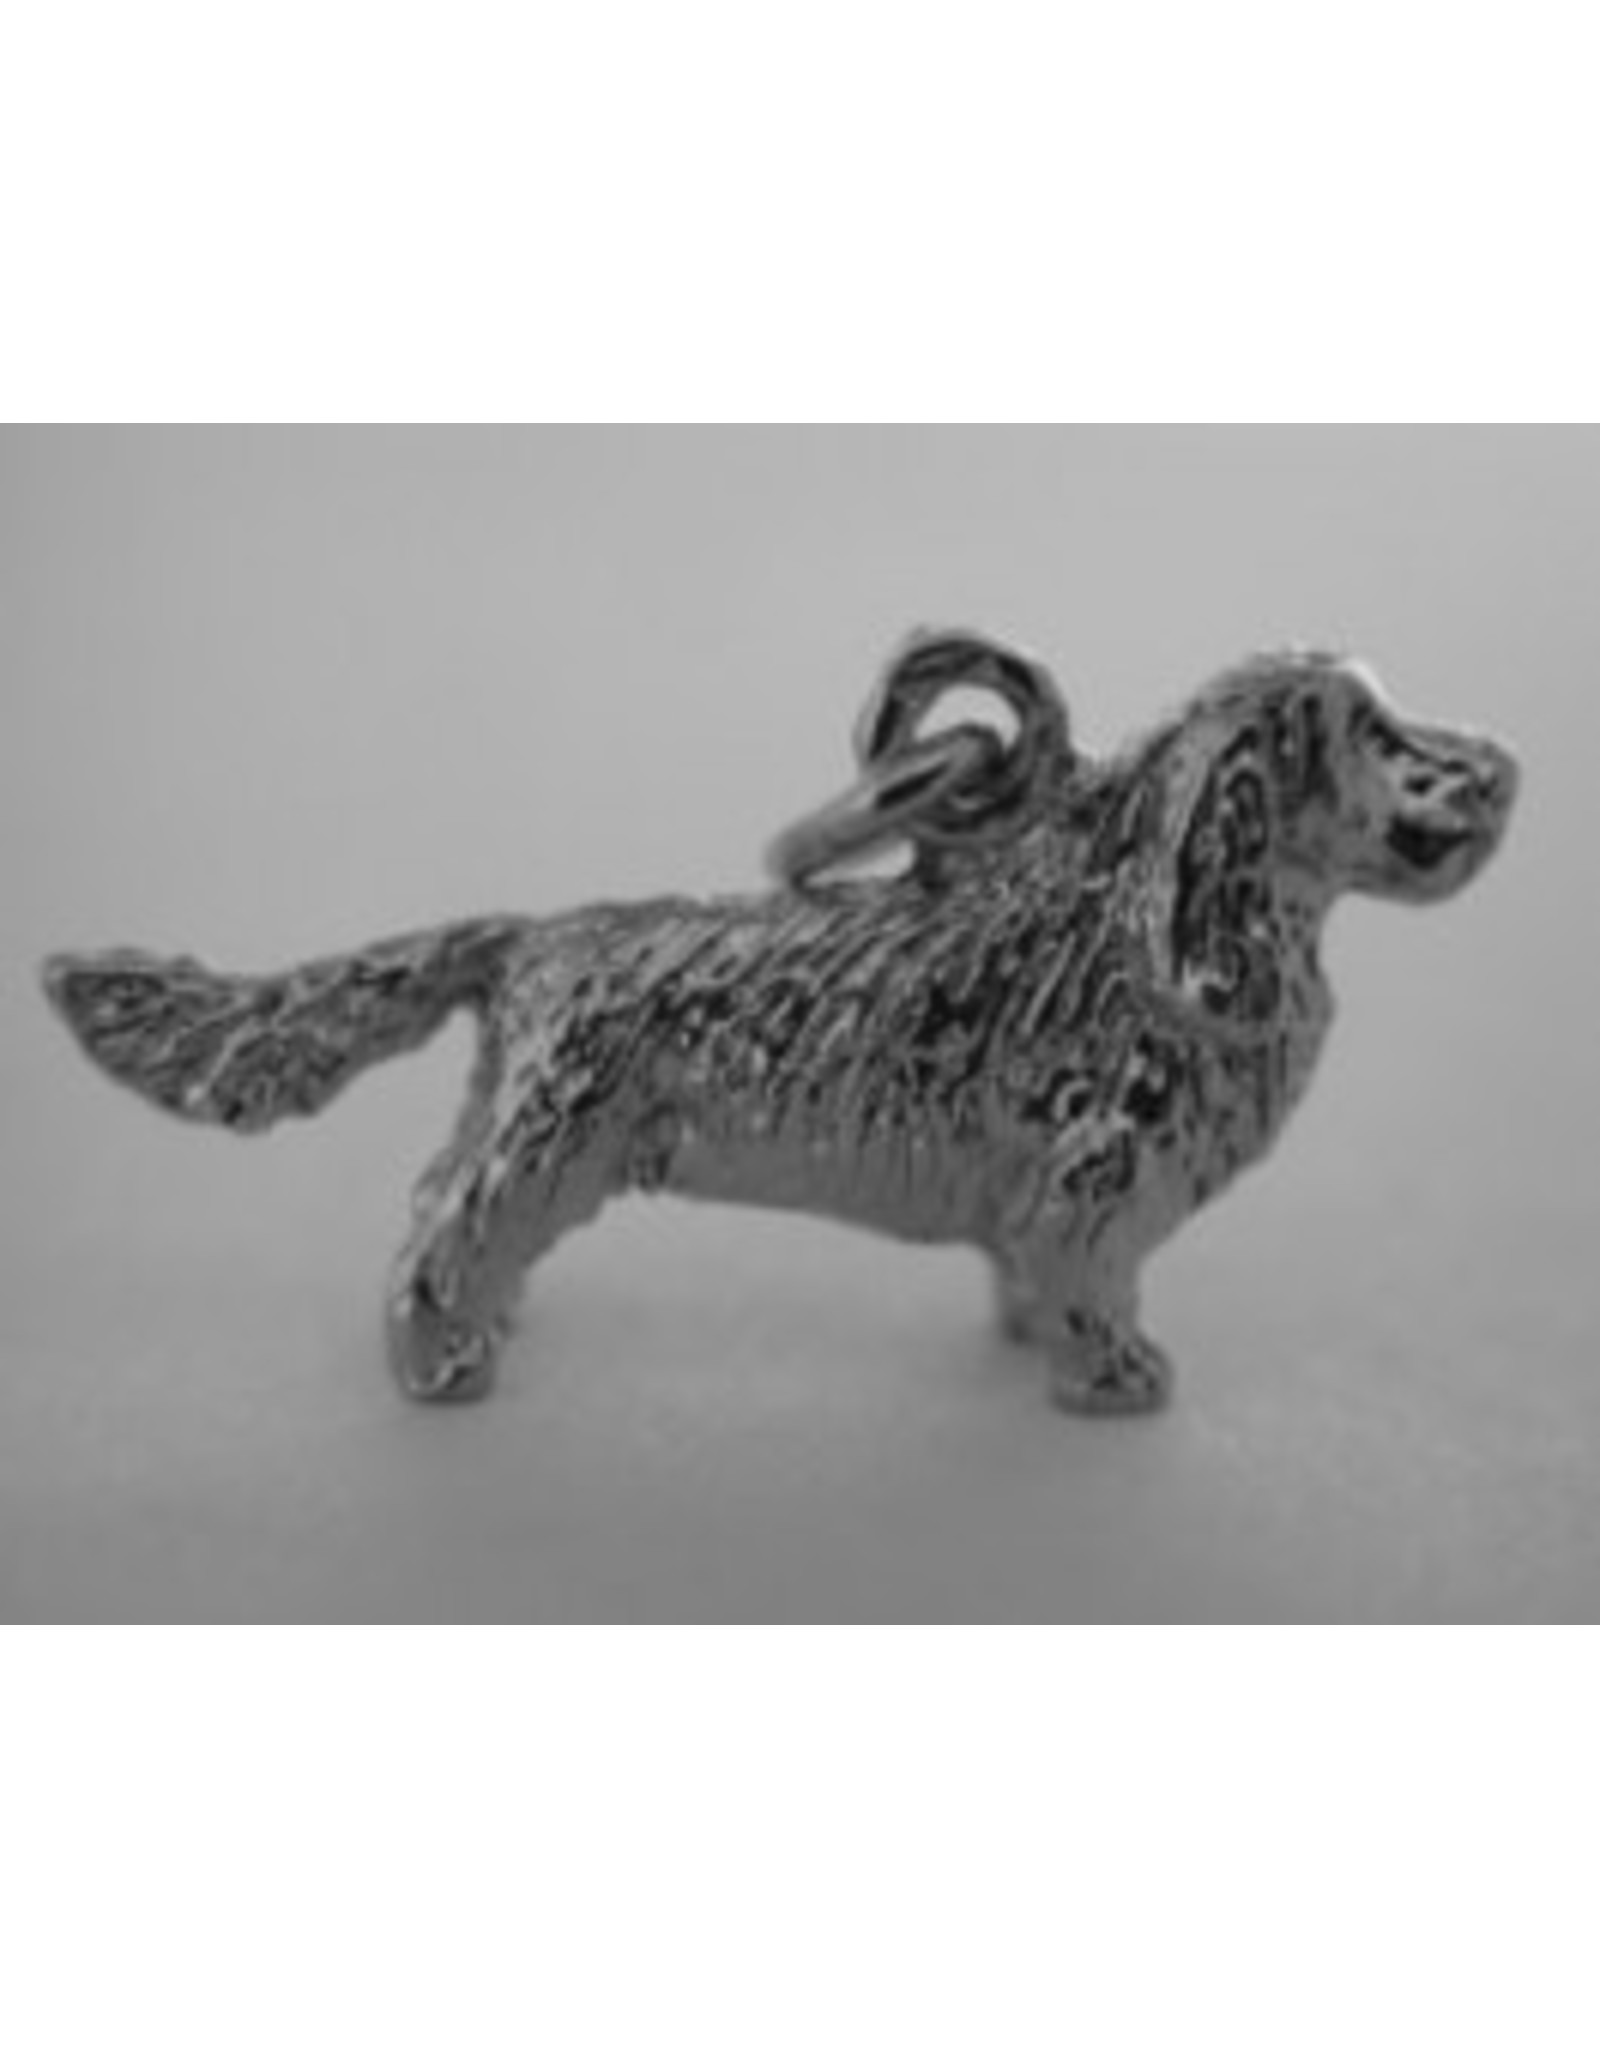 Handmade by Hanneke Weigel Zilveren Sussex spaniel